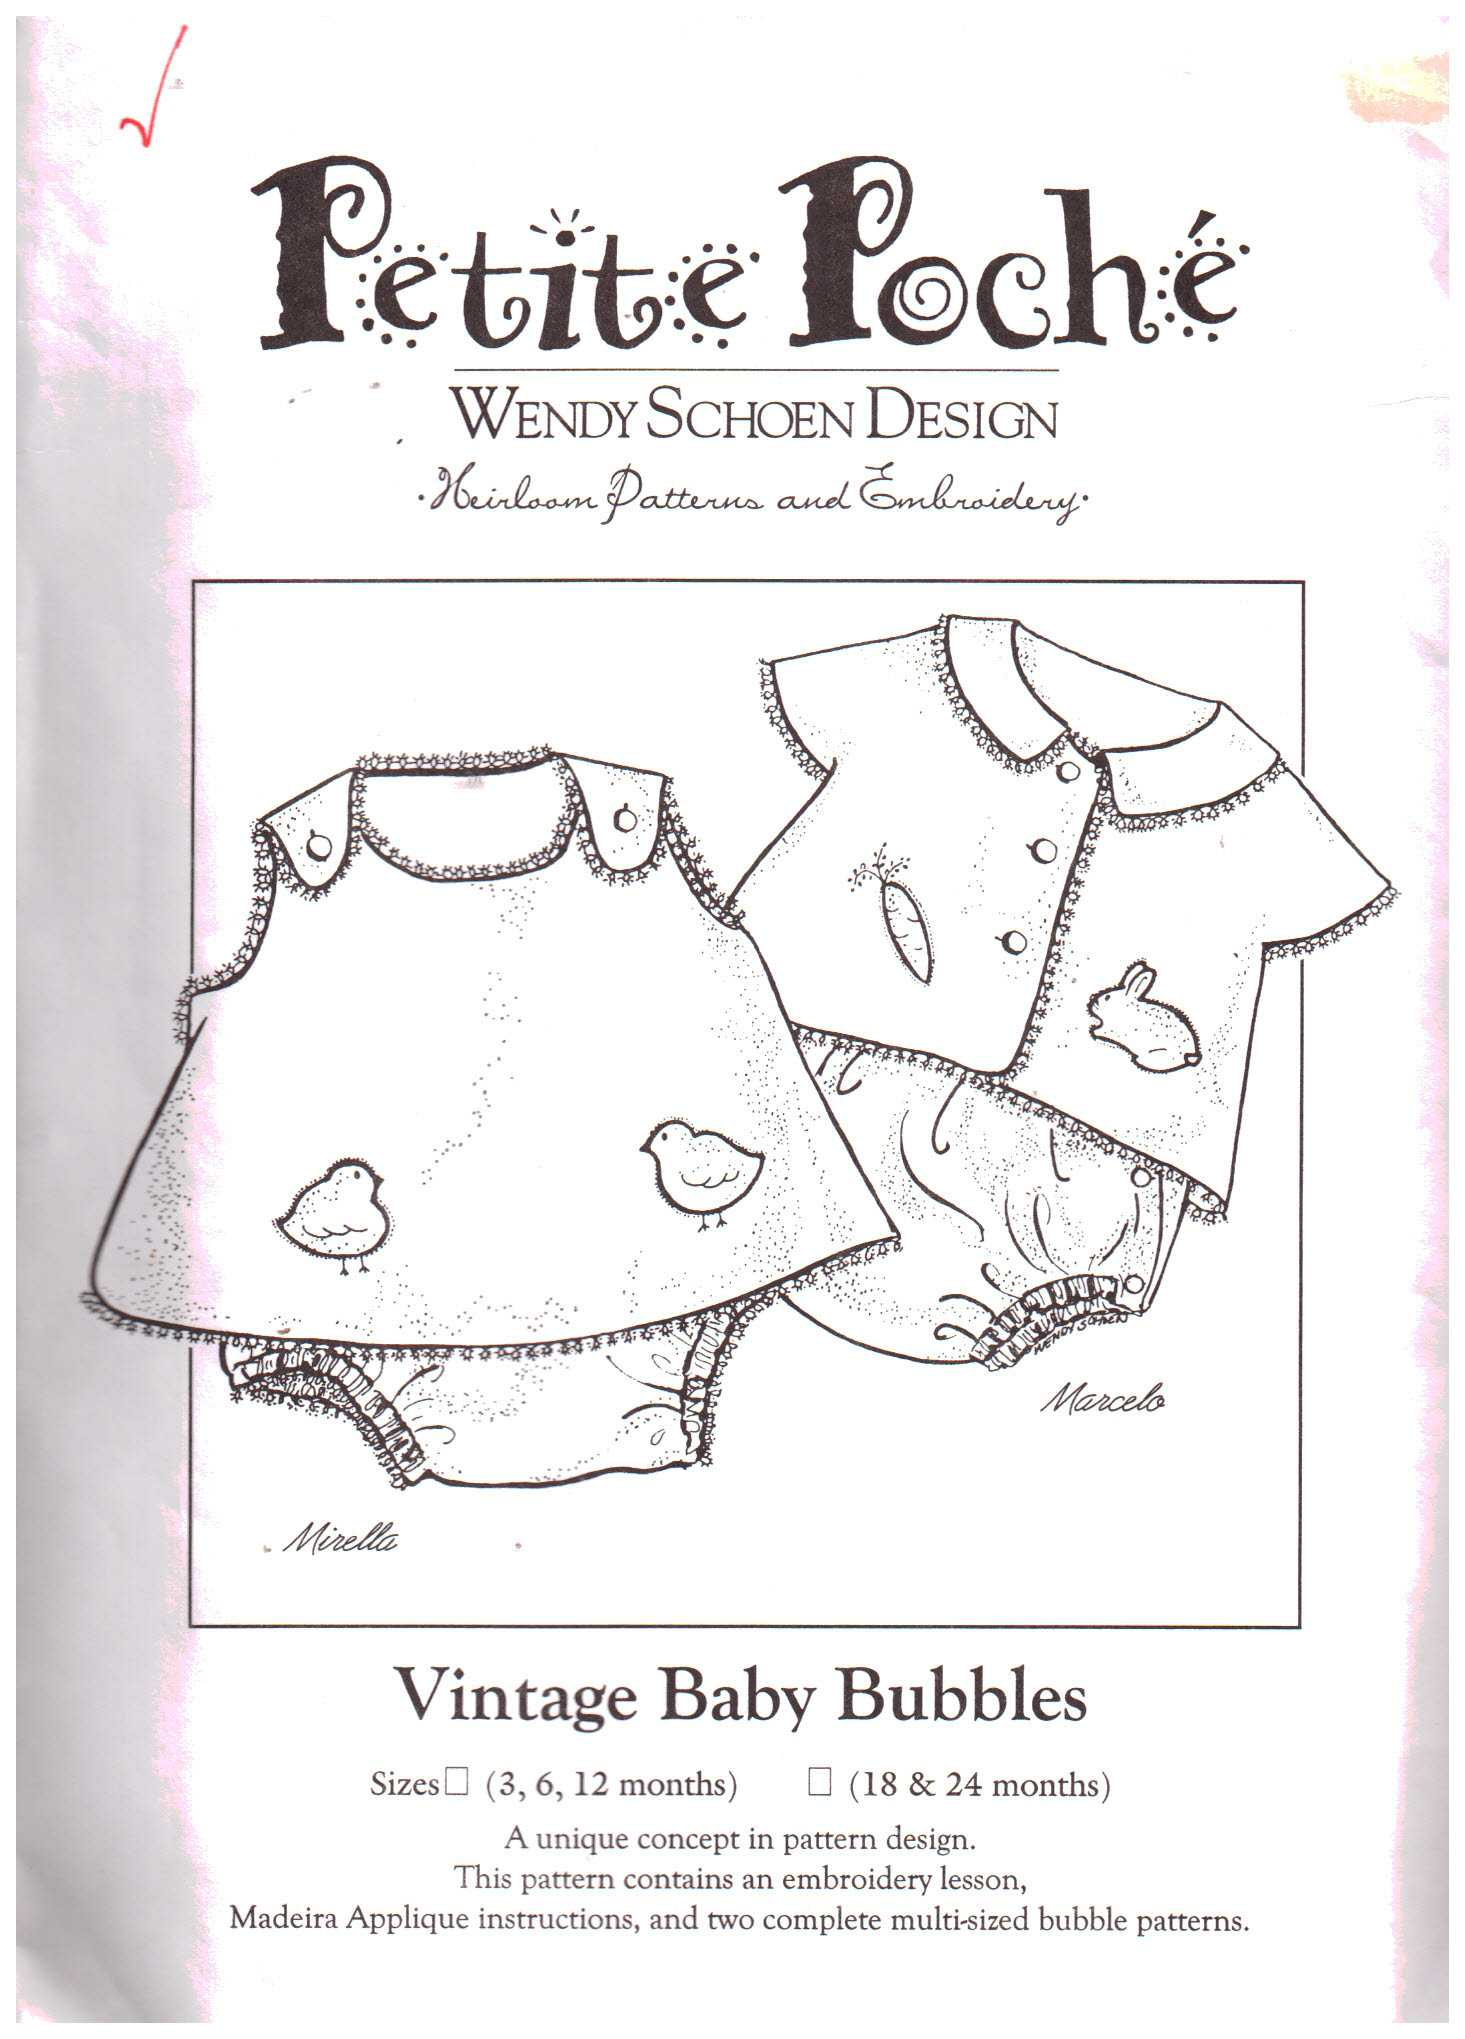 Sewing Patterns - Pattern-Walk Petite Poche sewing patterns